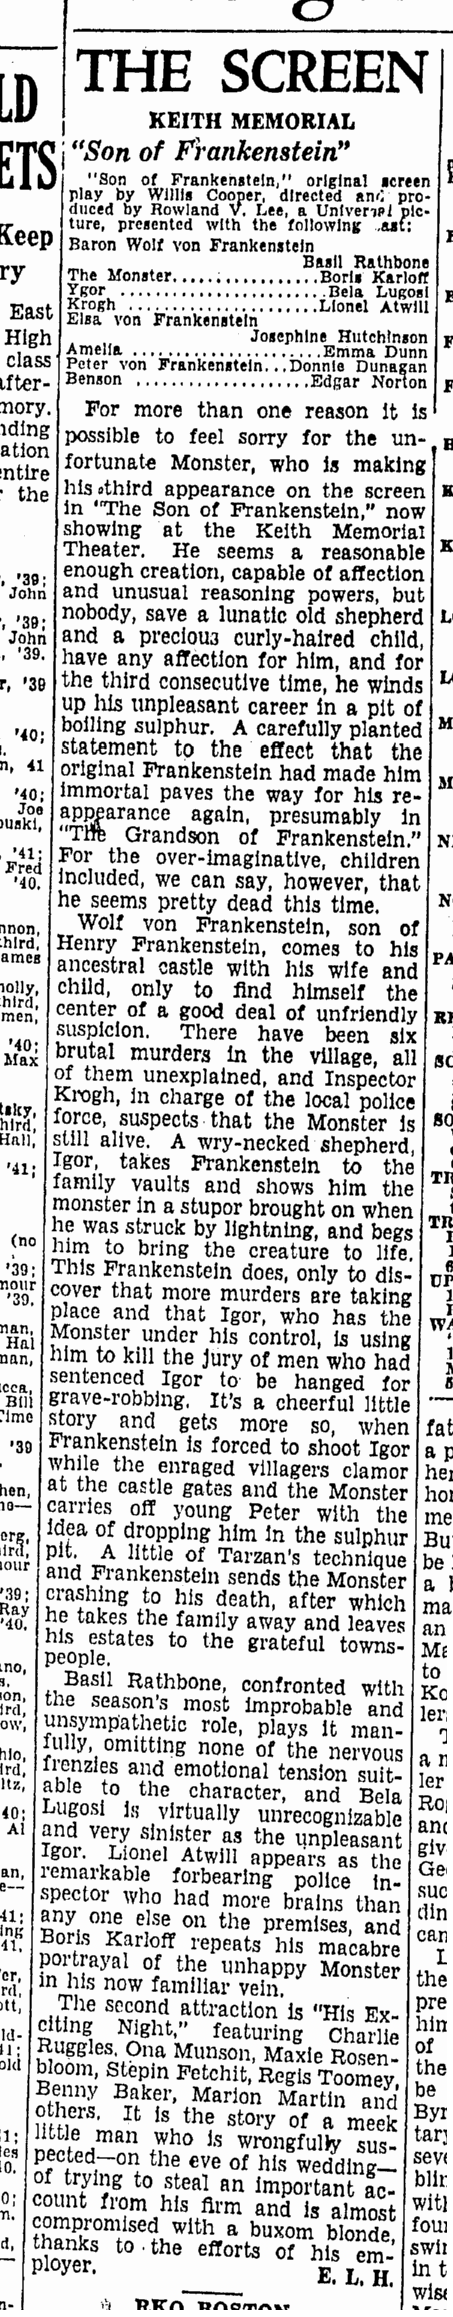 Son of Frankenstein, Boston Herald, January 14, 1939 2